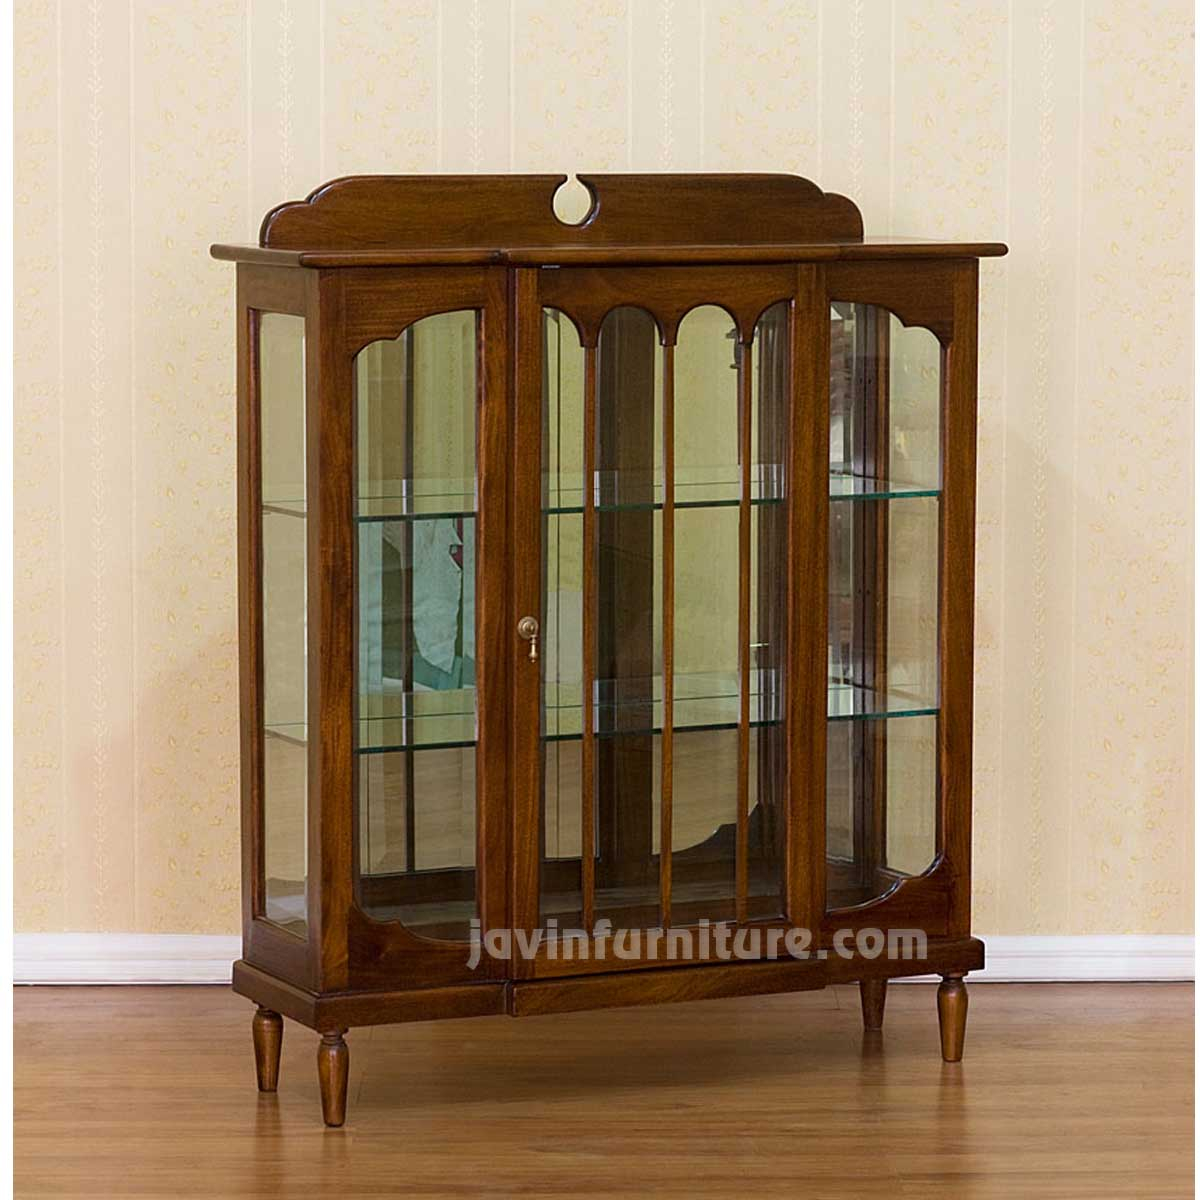 Small Wooden Display Cabinet With Glass Doors  Display